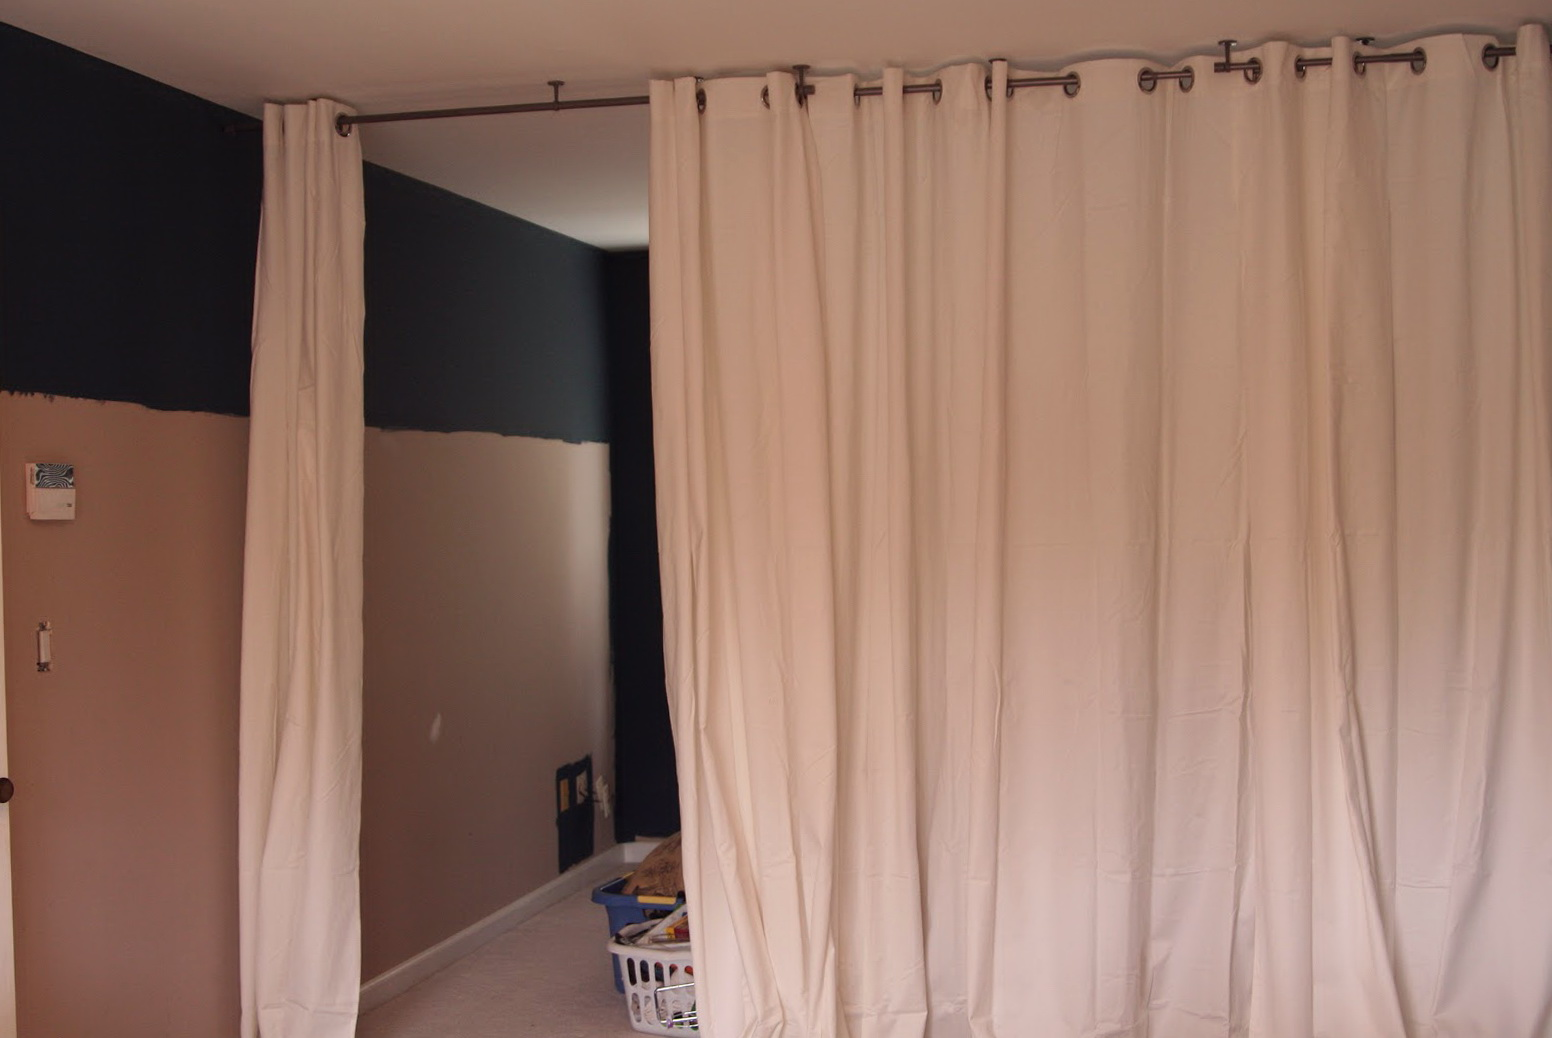 Hanging Curtains From Ceiling To Separate A Room Home Design Ideas